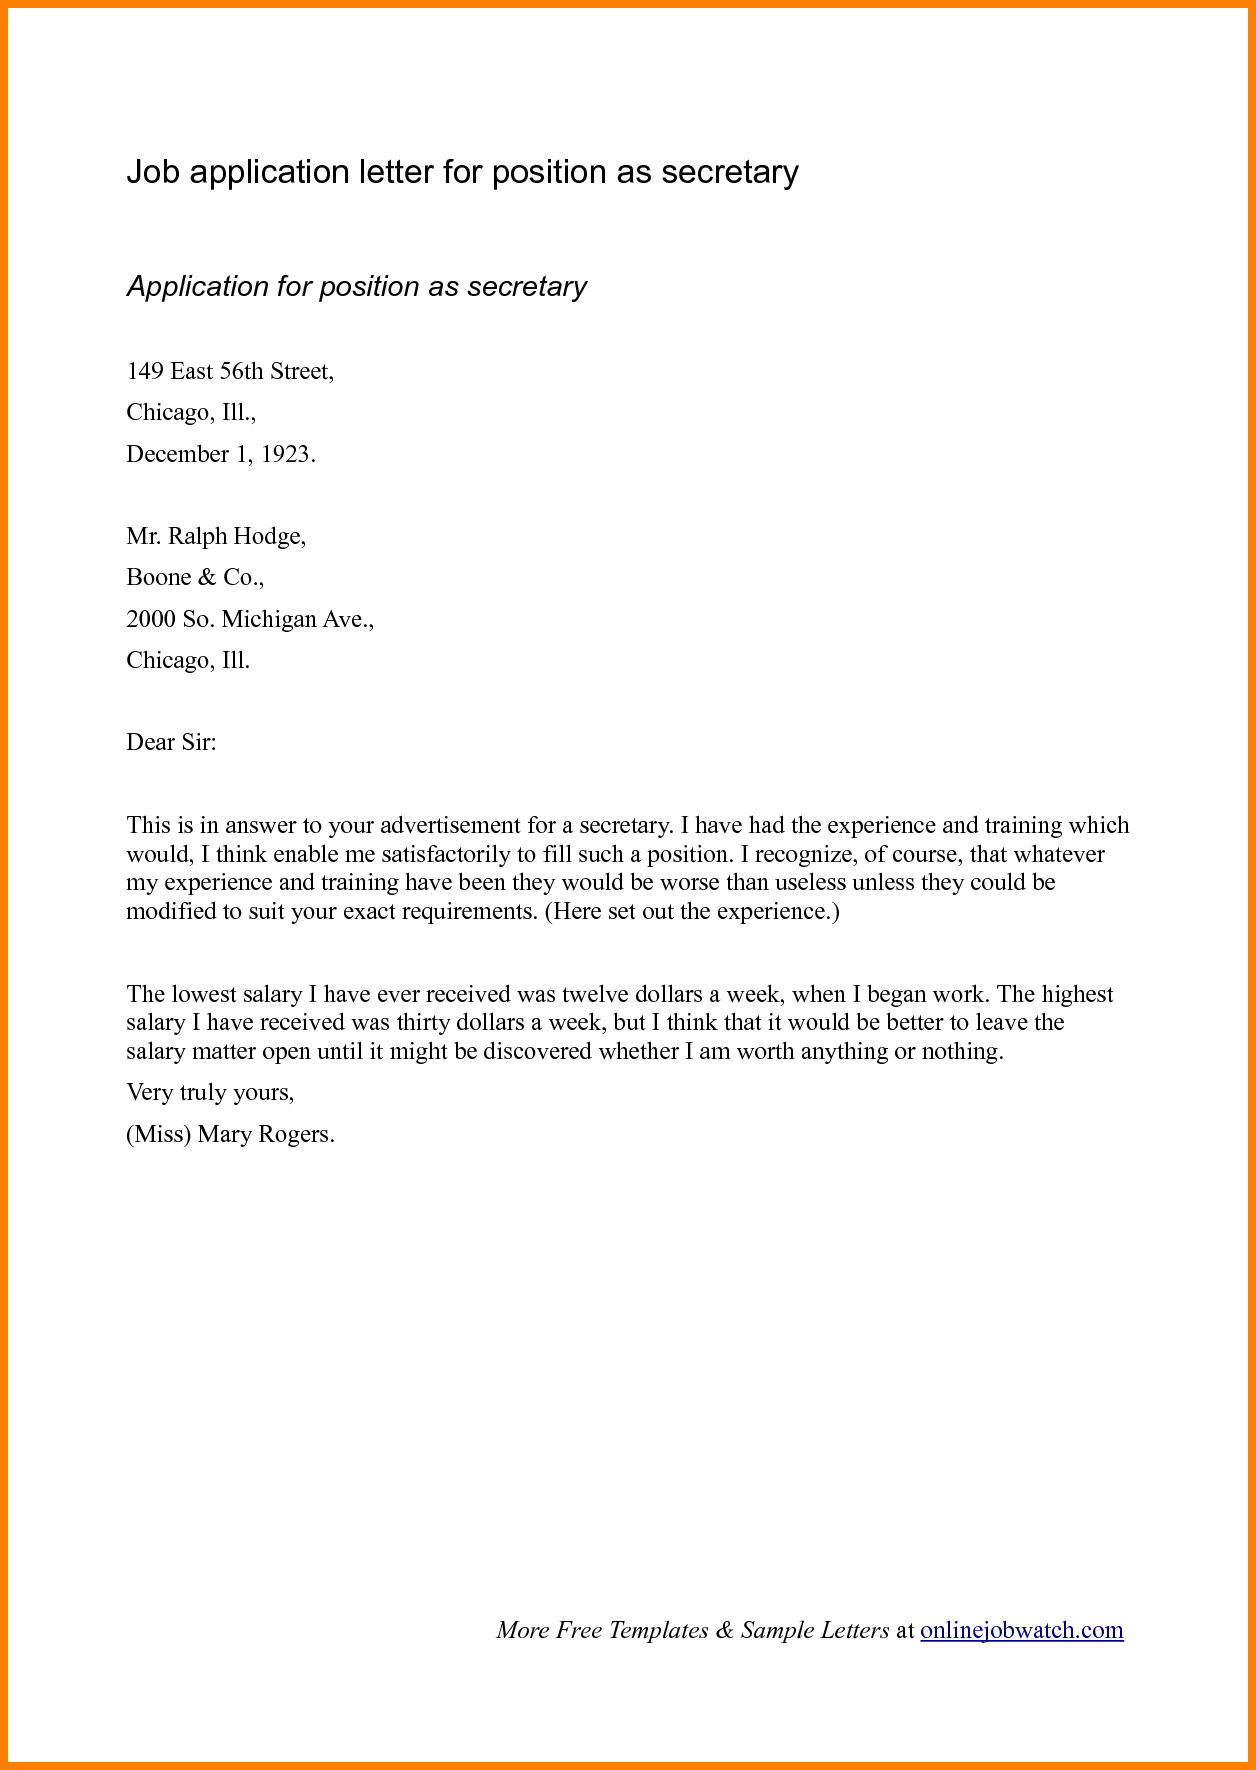 Job Application Letters Example Business Letter For Ojt  Home